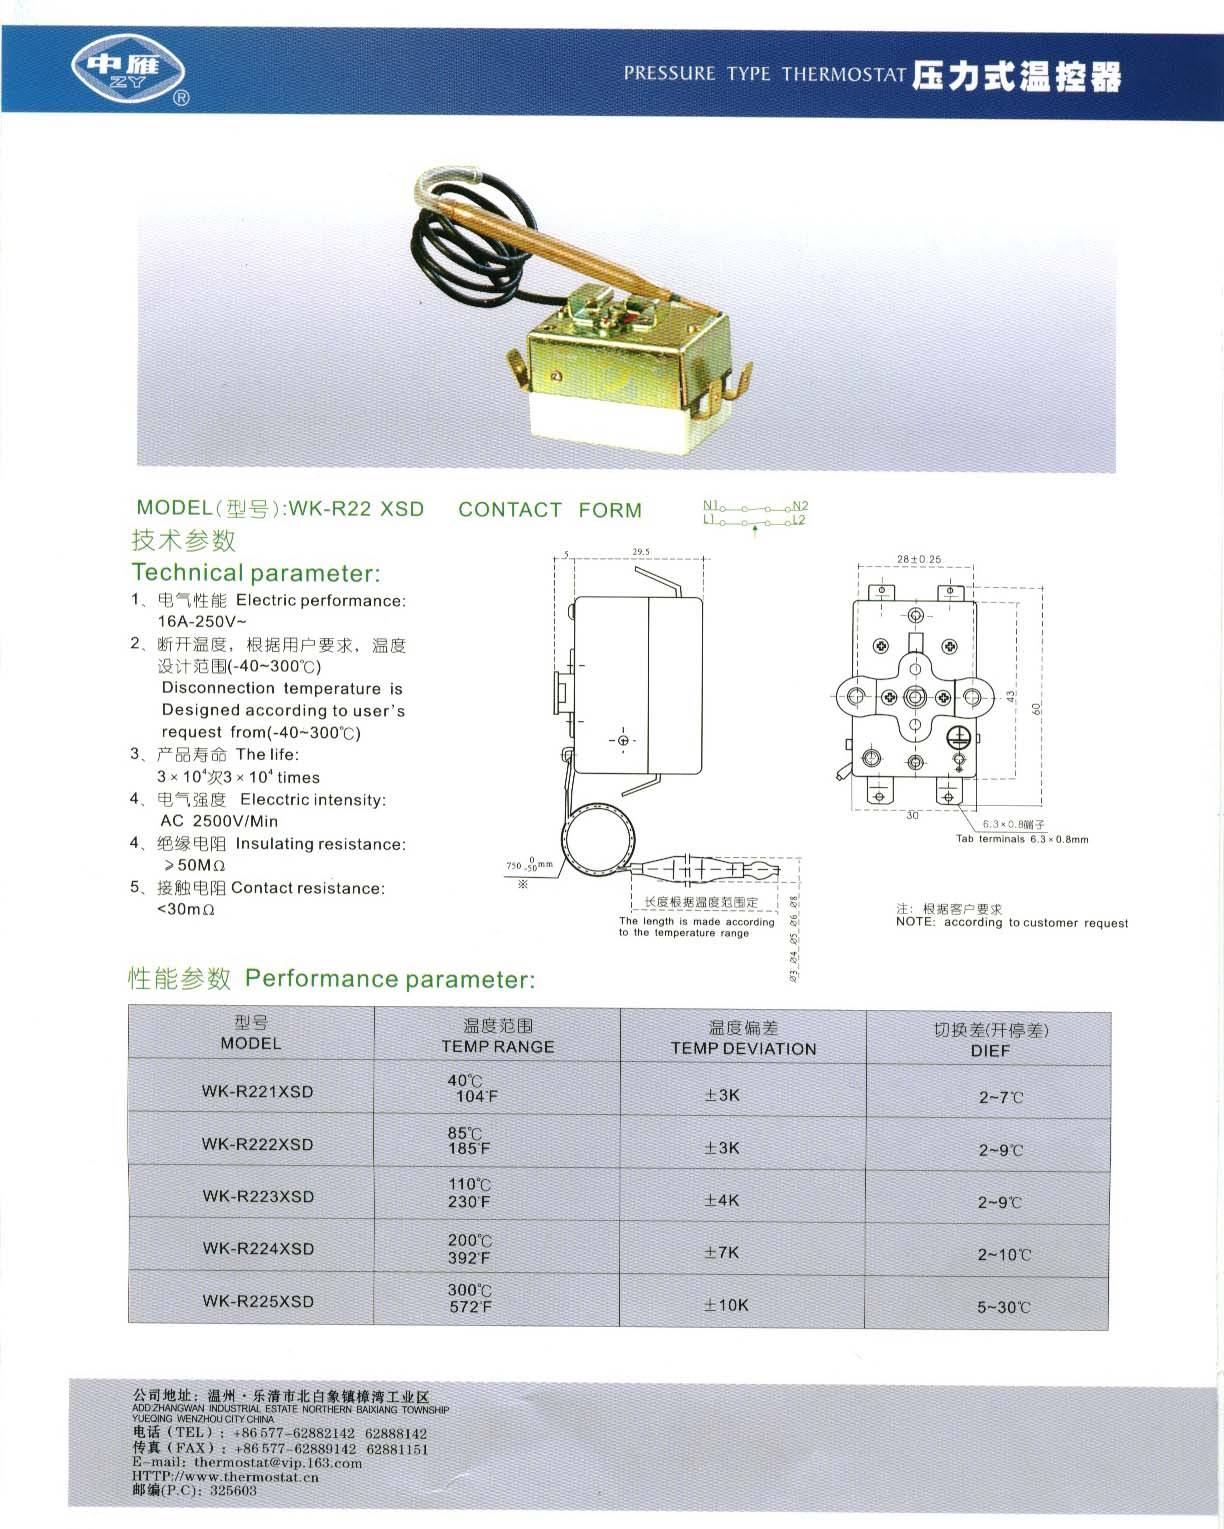 Thermostat WK-R22 XSD